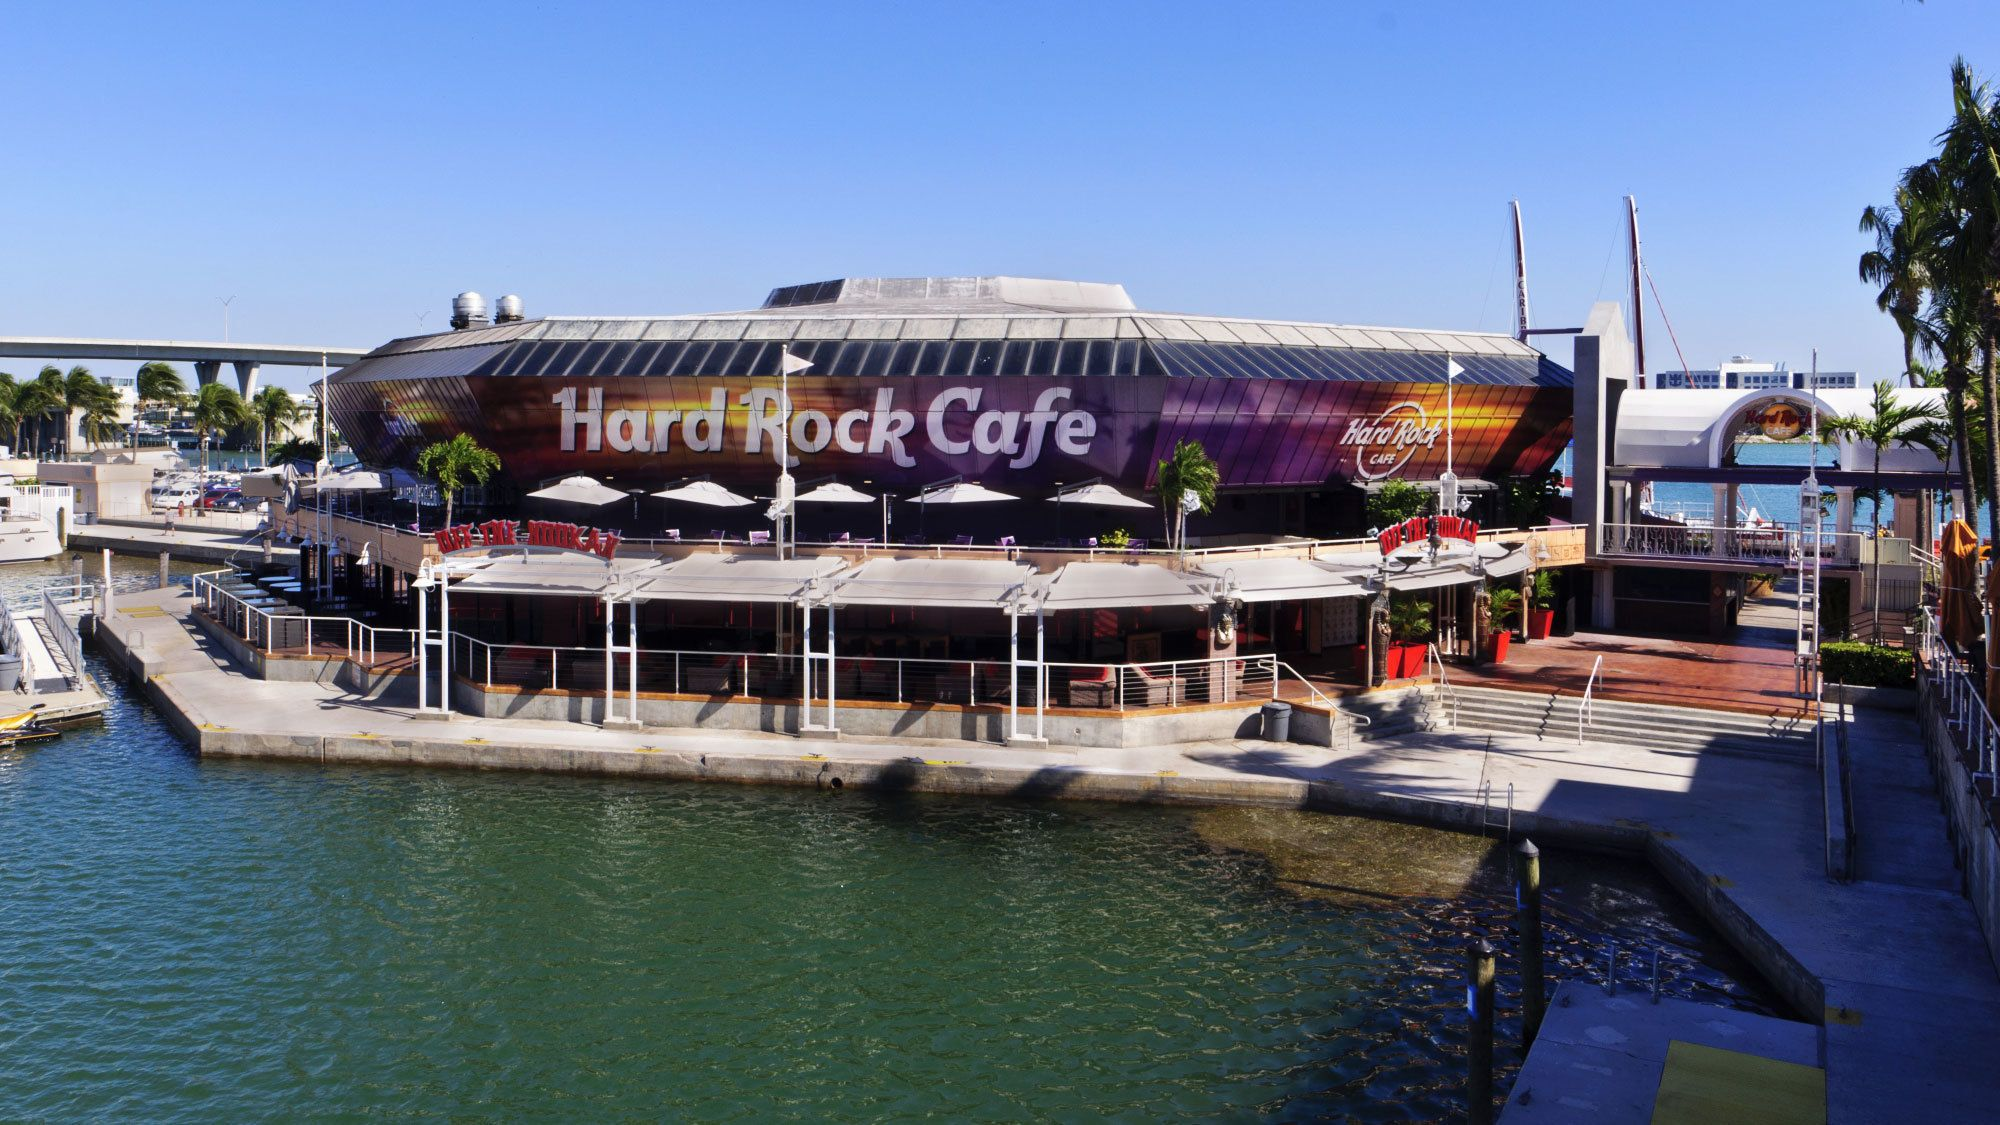 Dining at Hard Rock Cafe with Skip-the-Line Priority Seating